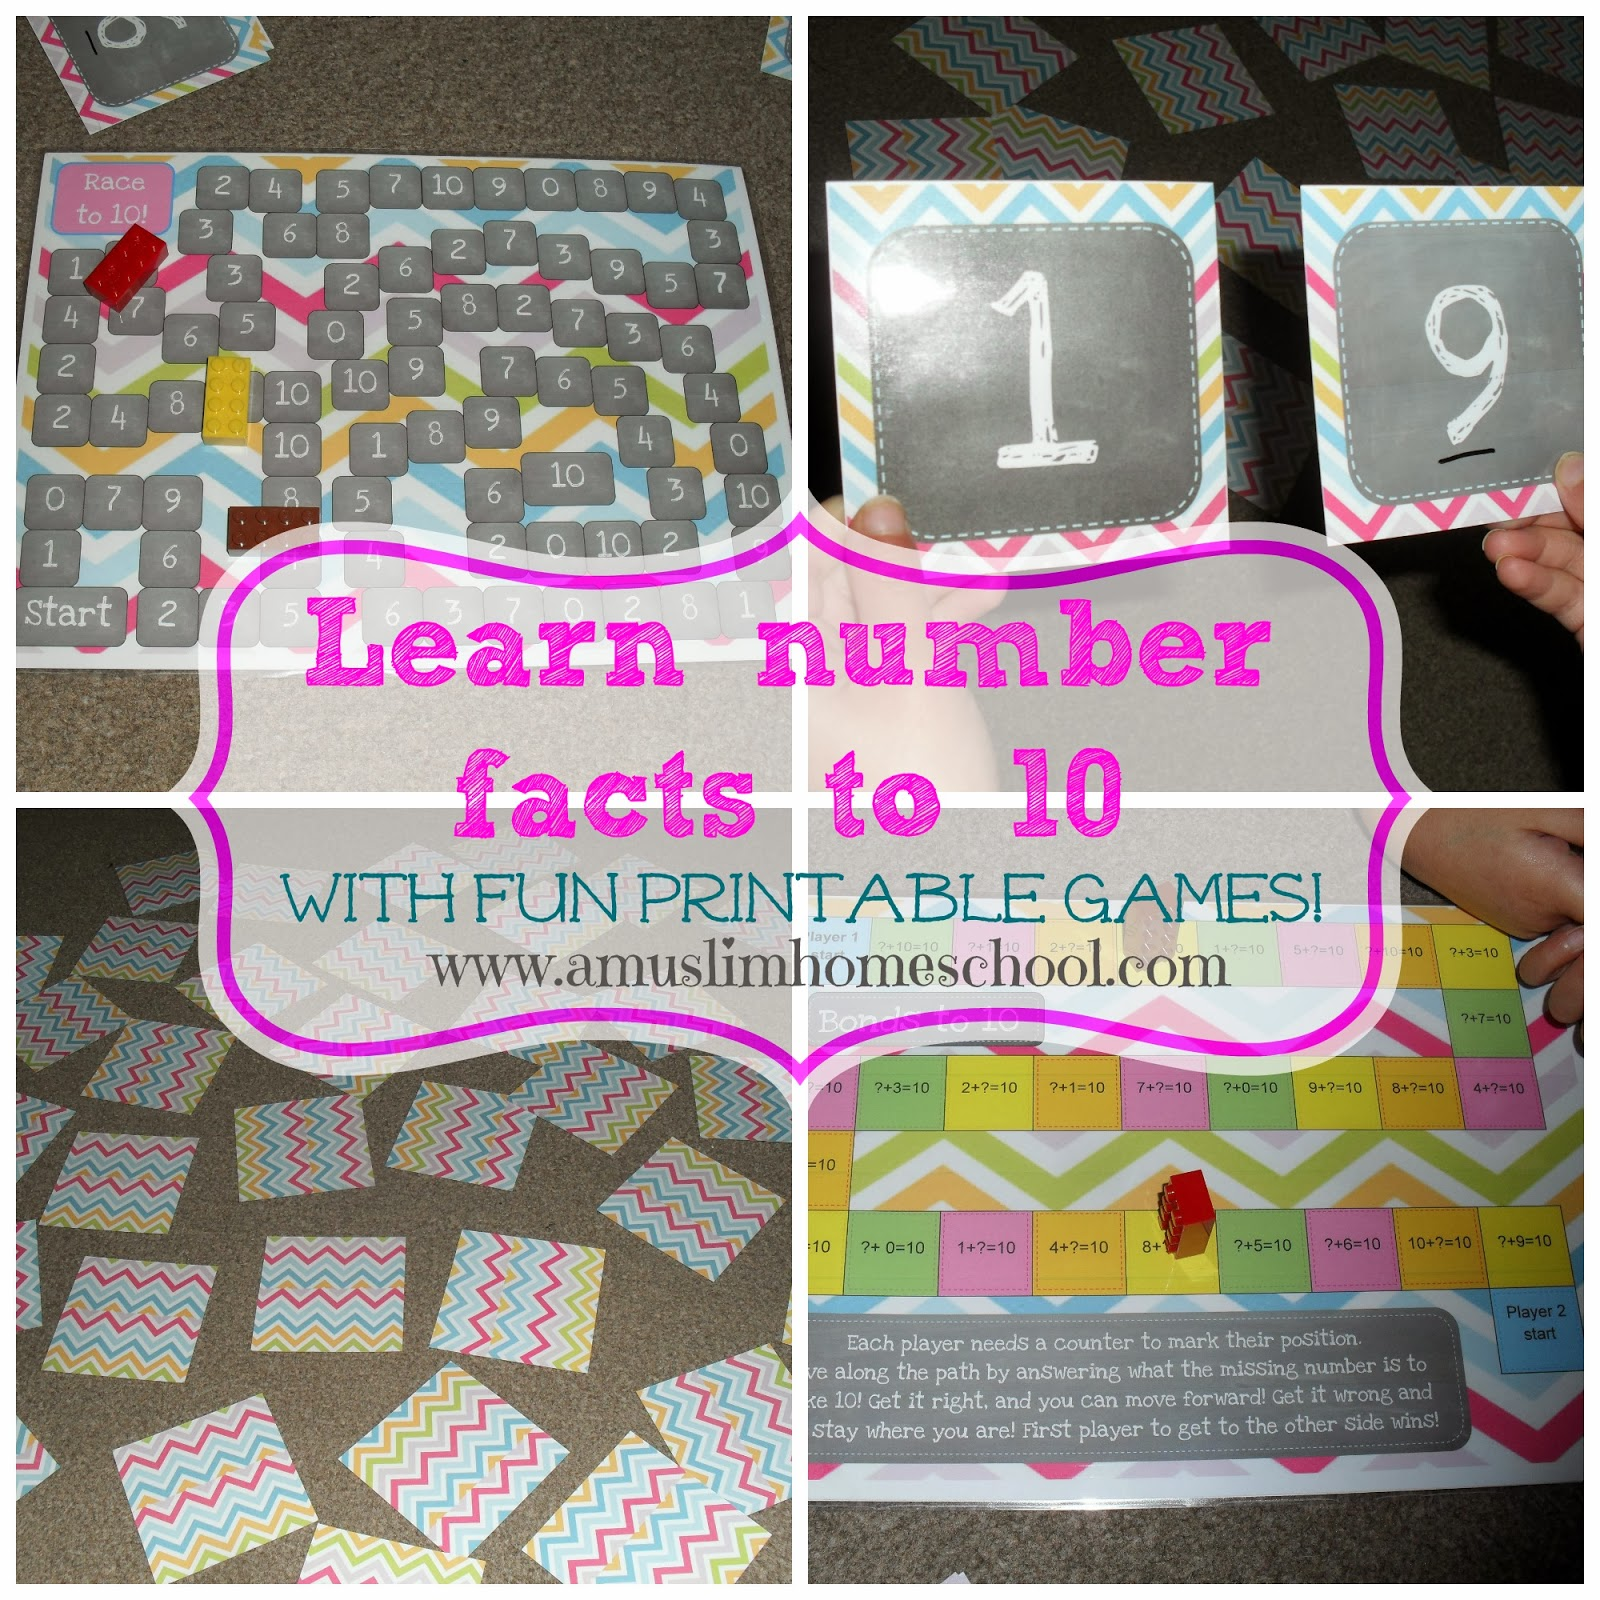 a muslim homeschool: fun free maths games to learn number facts to 10!